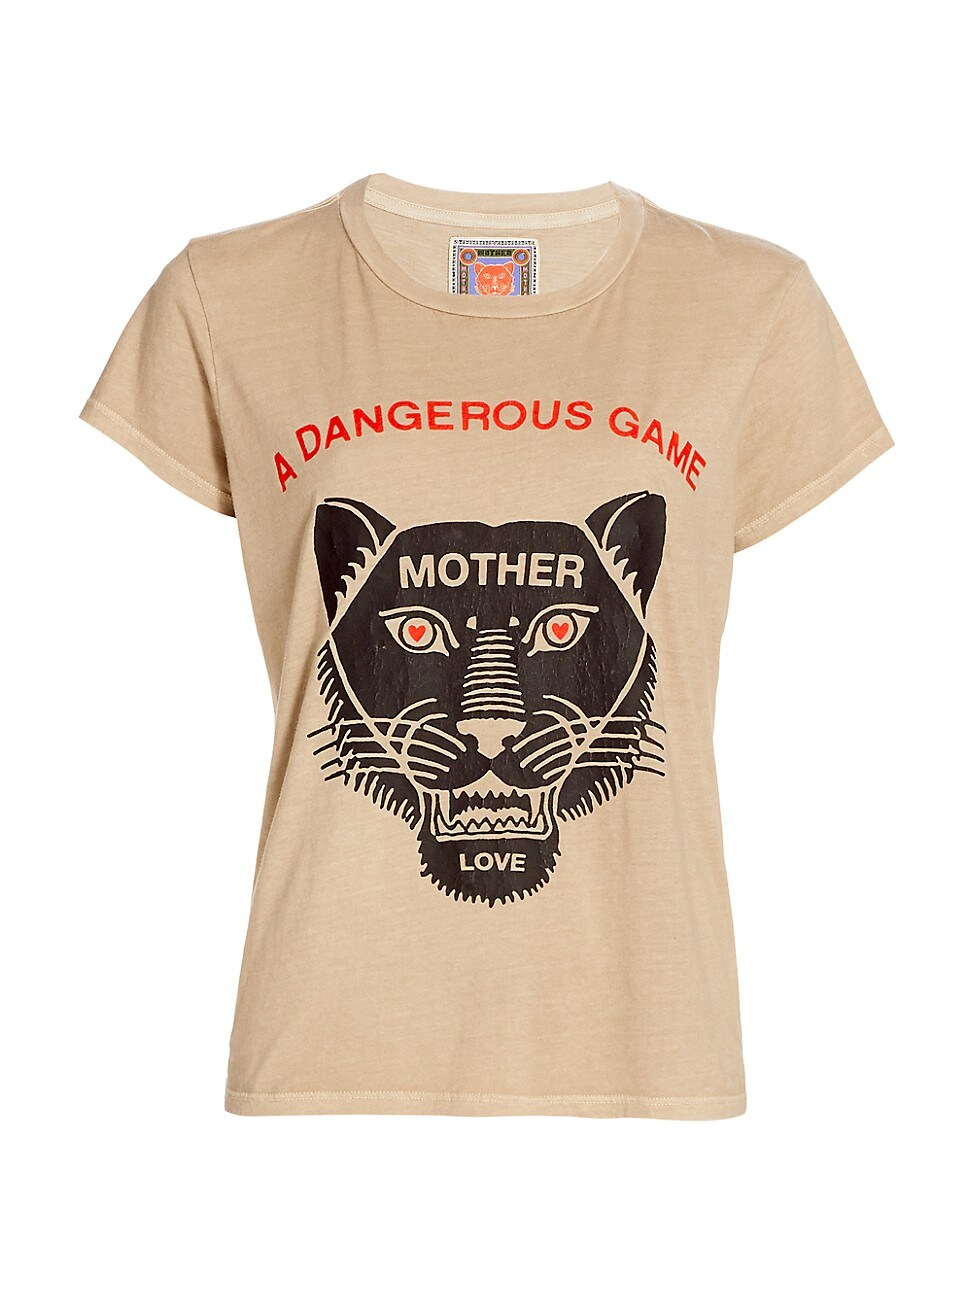 MOTHER WOMEN'S THE BOXY GOODIE GOODIE GRAPHIC T-SHIRT